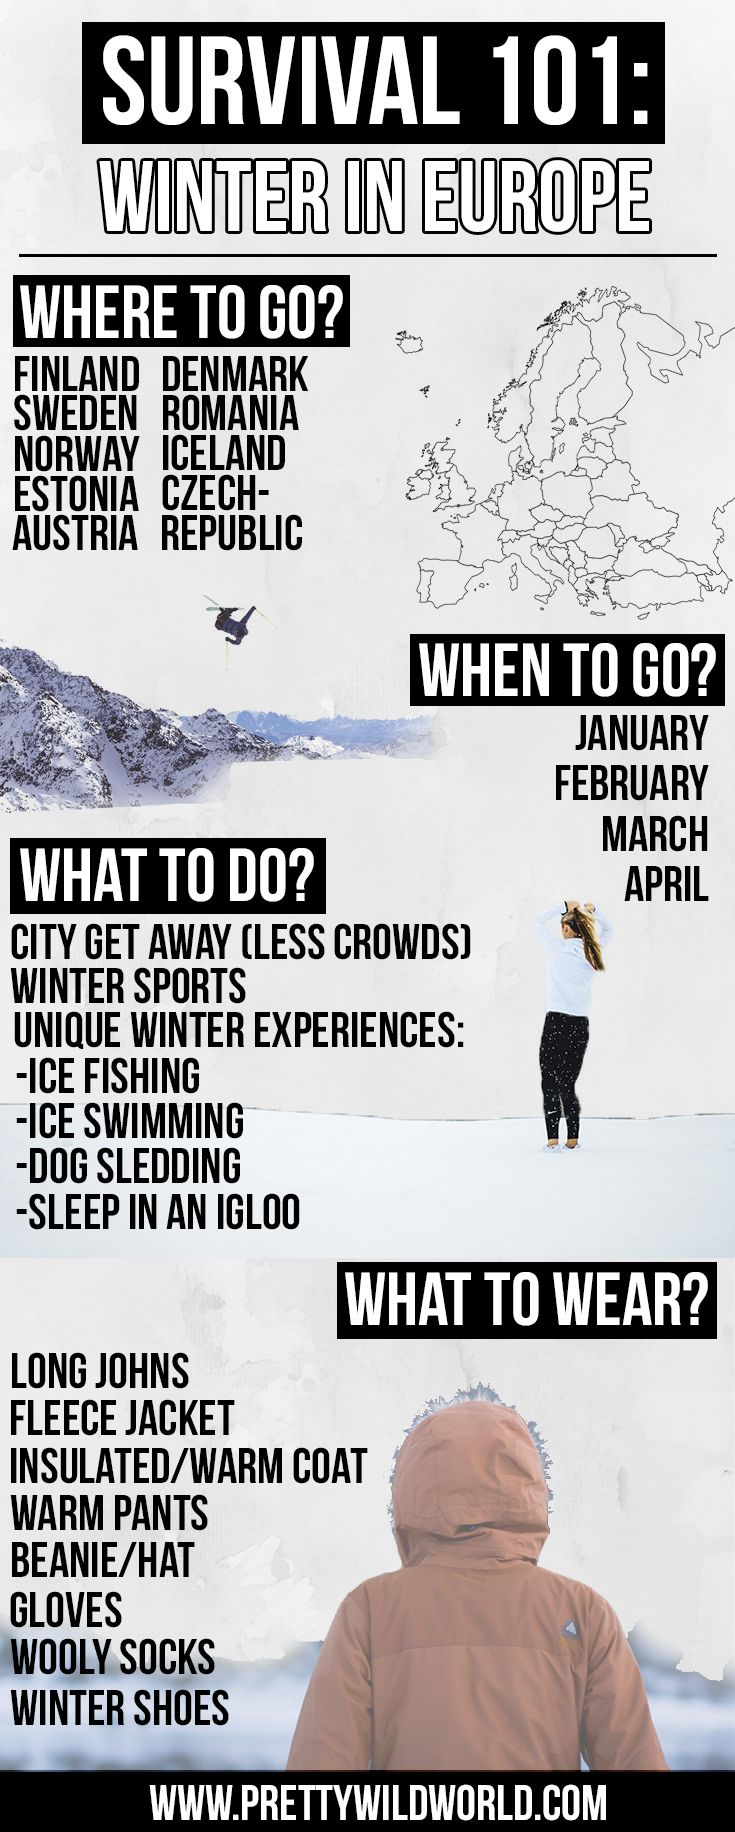 Check out this link to learn more how to survive winter in Europe so you don't freeze your buttocks off! Or pin this for later!